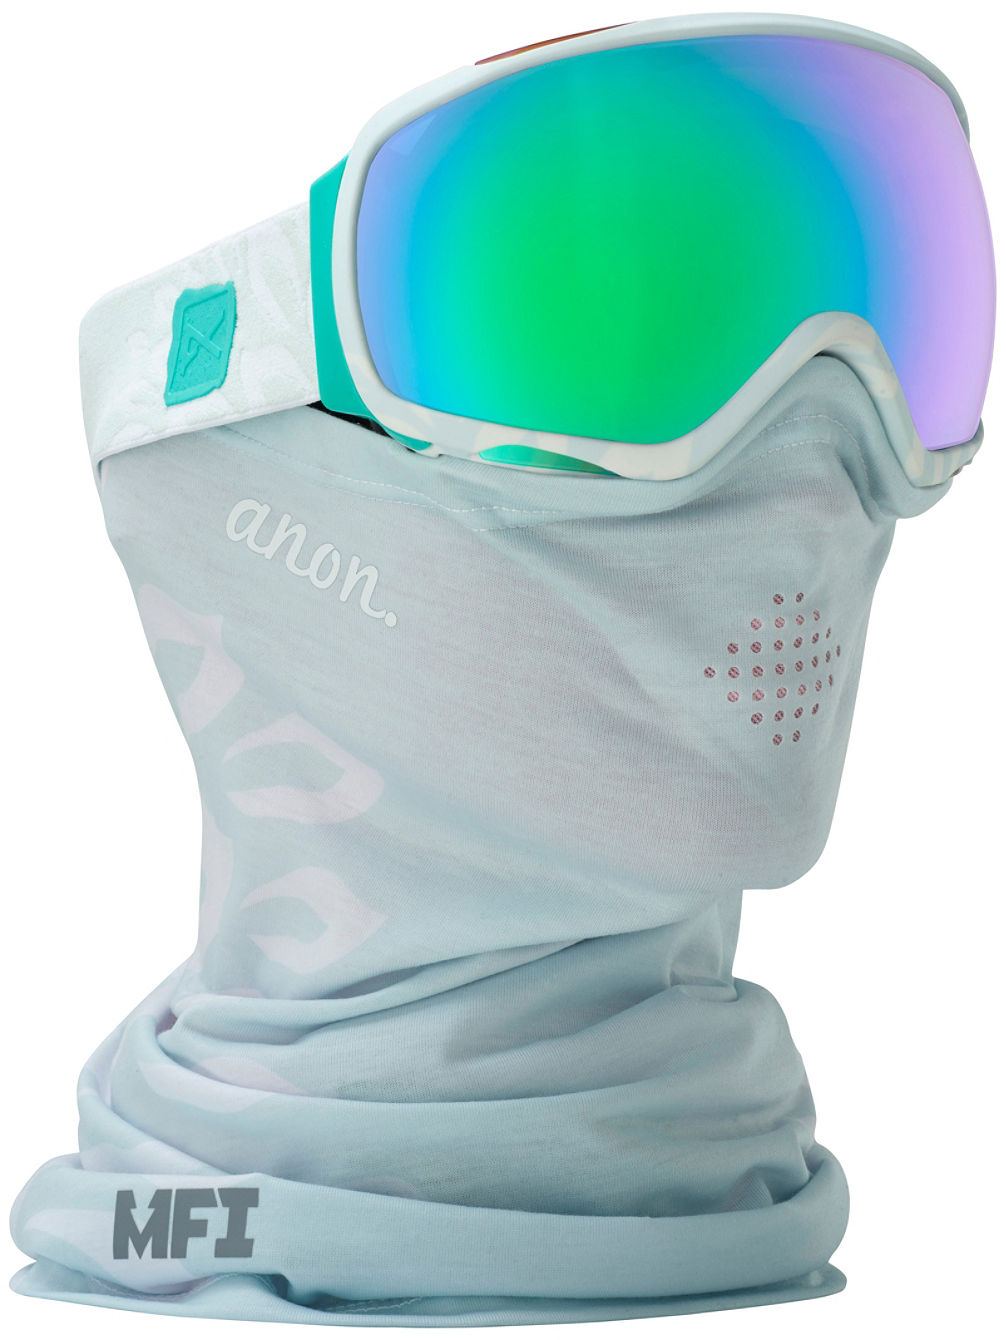 Tempest MFI Empress Wht (+Facemask) Goggle